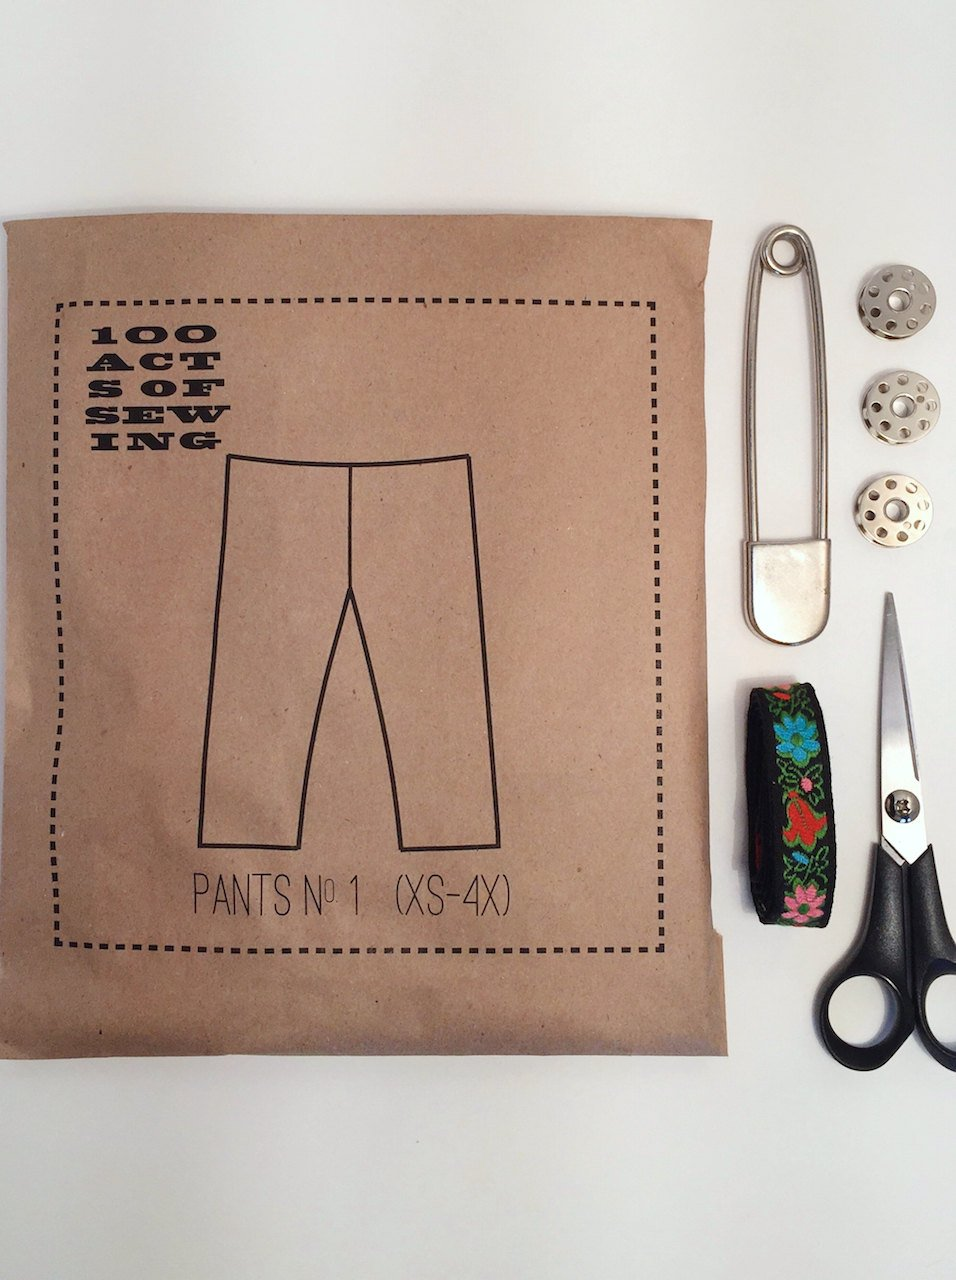 100 Acts of Sewing - Pants No. 1